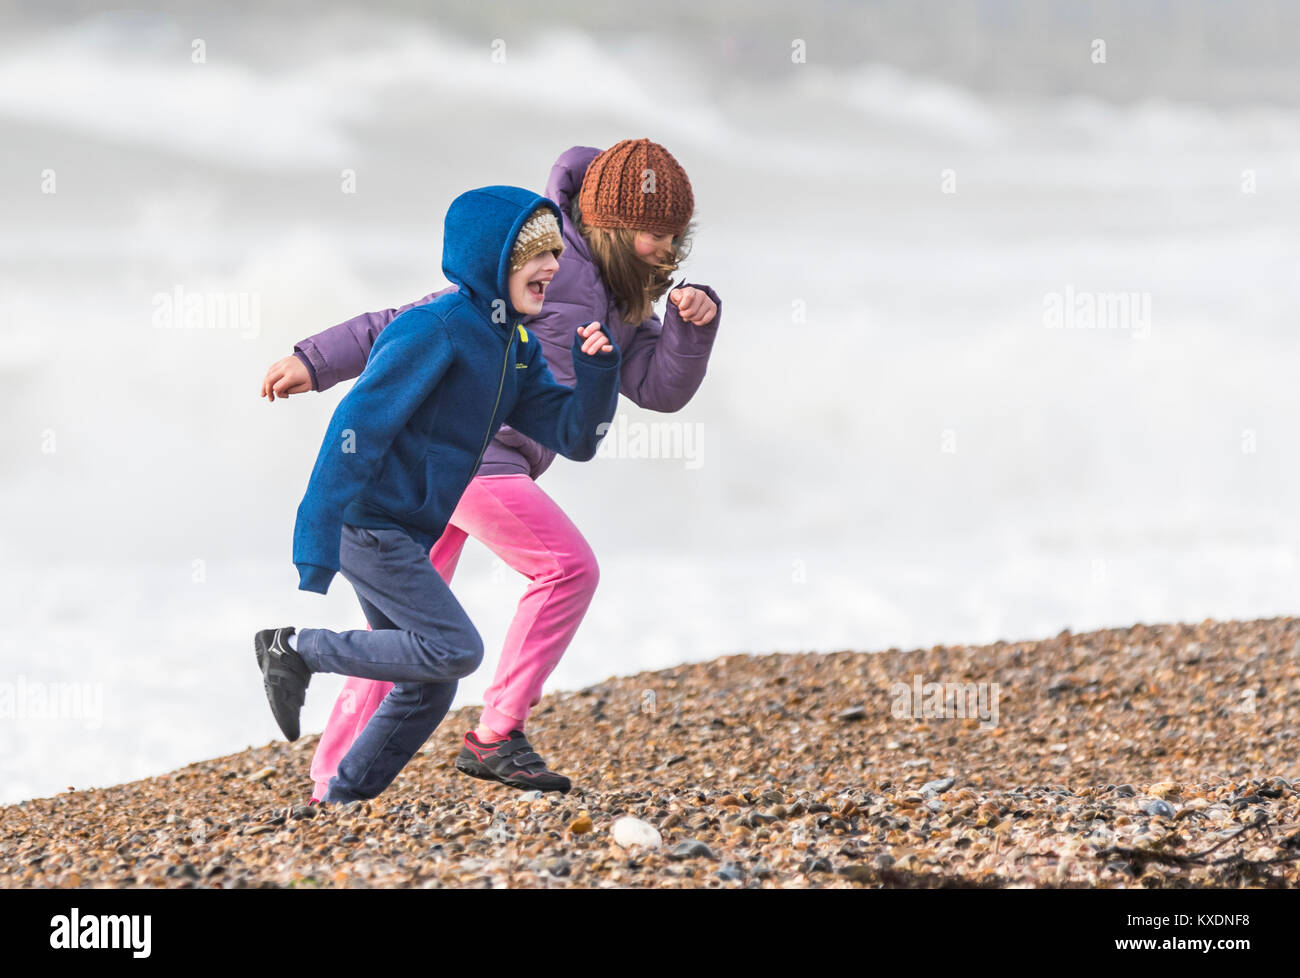 young-children-on-a-shingle-beach-in-winter-wrapped-up-in-coast-and-KXDNF8.jpg